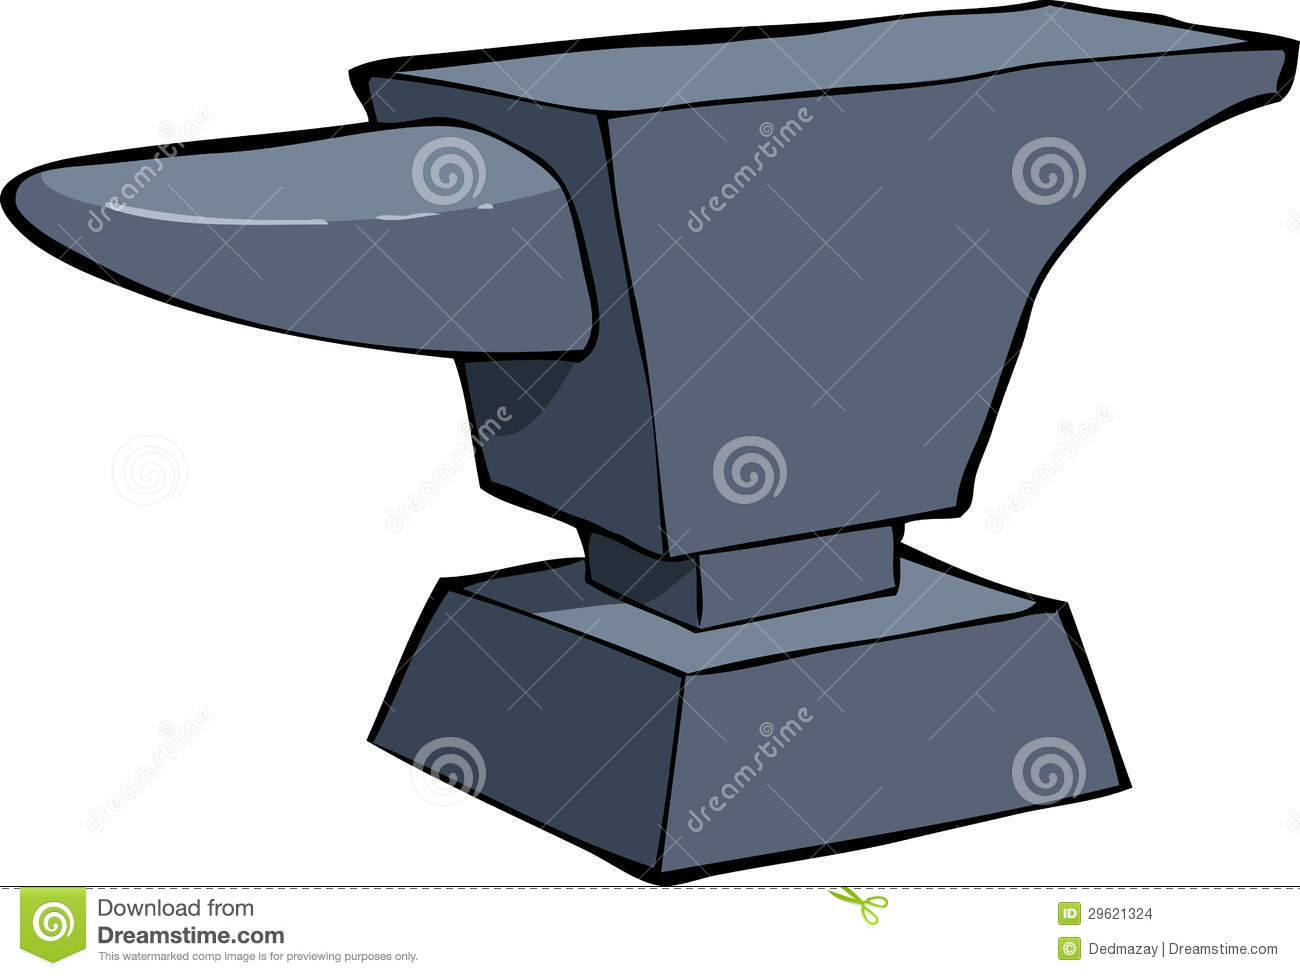 Cartoon Anvil Stock Images - Image: 29621324